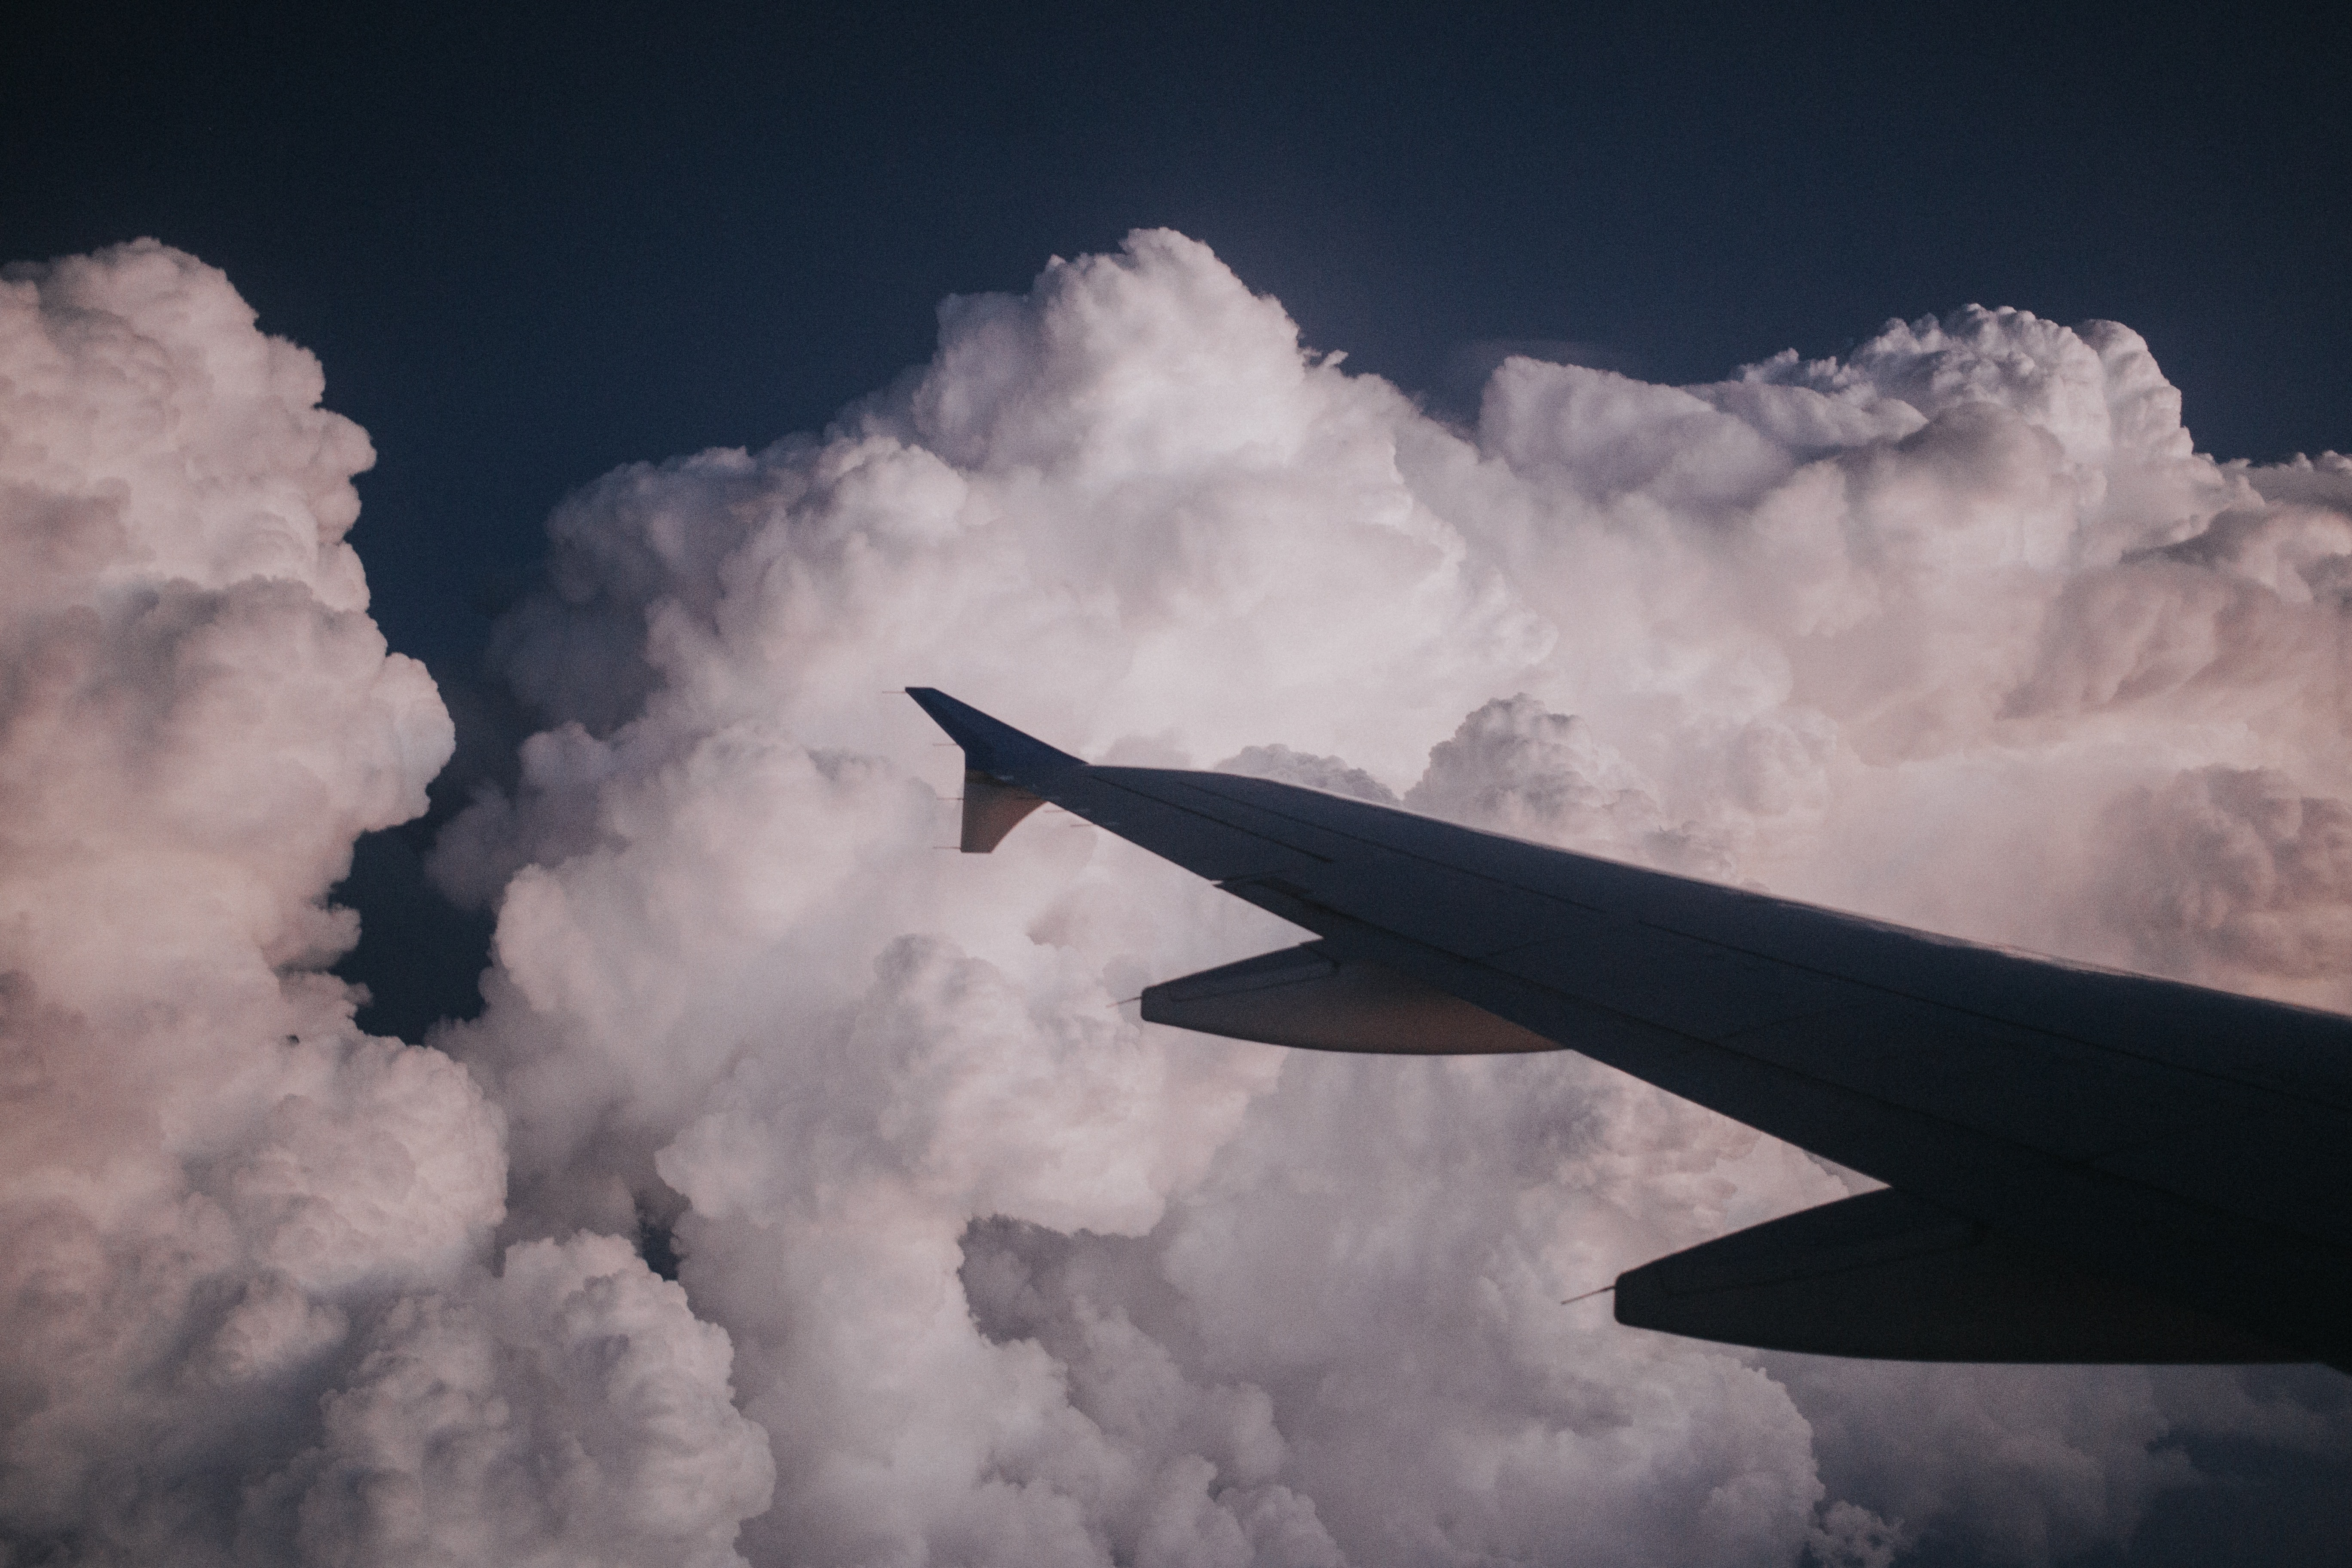 silhouette photography of plane's wing near cumulus clouds